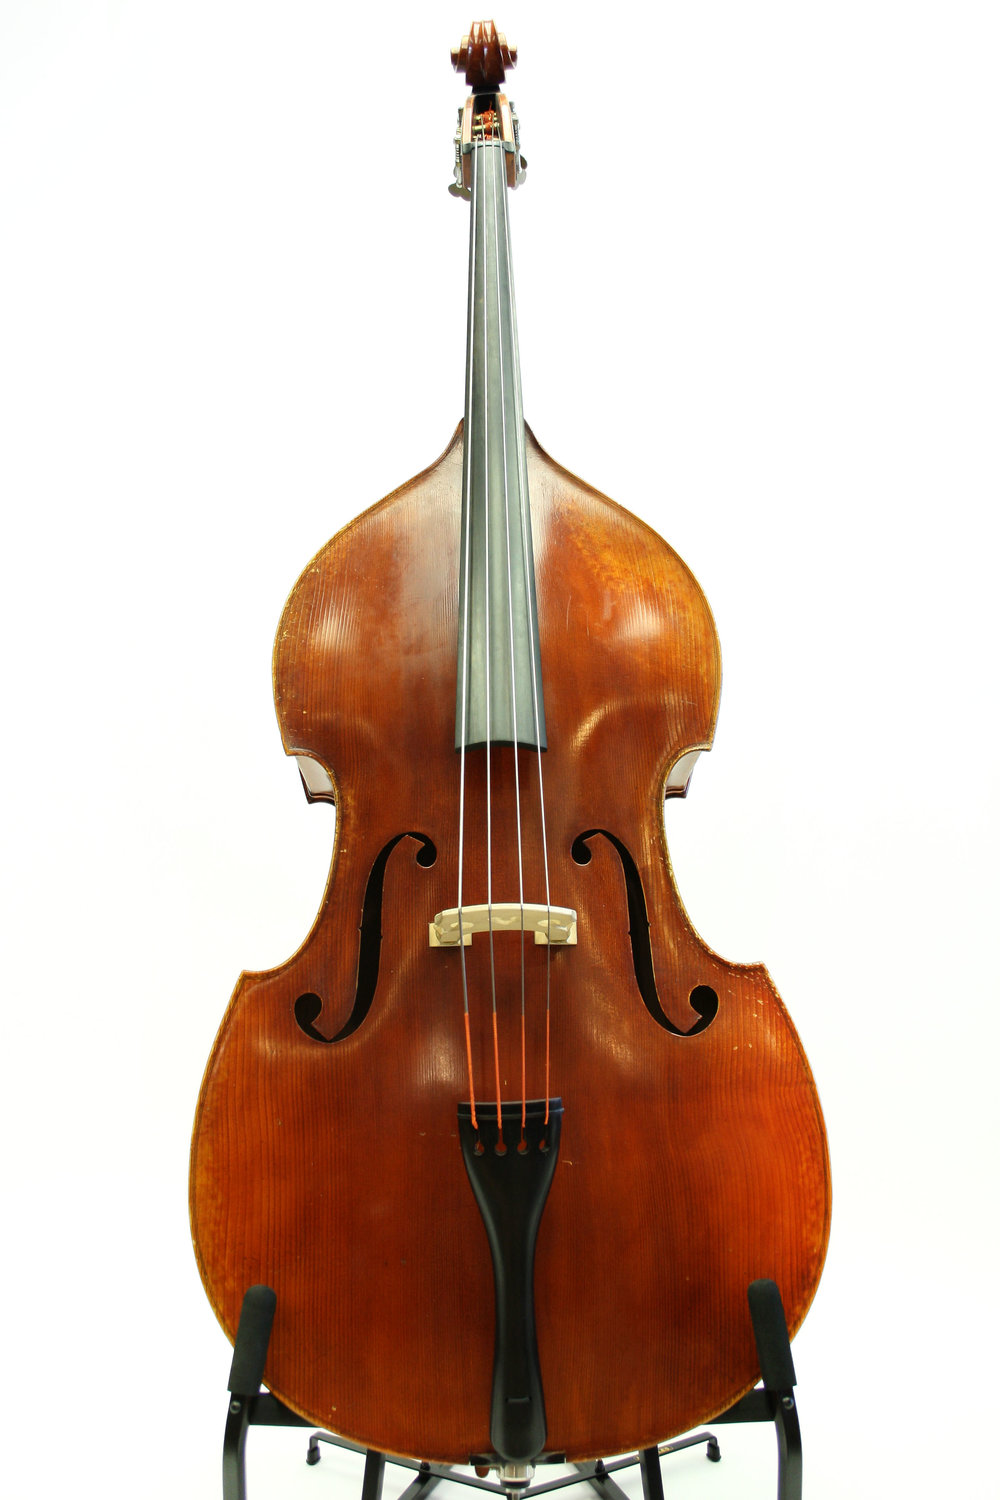 Roderich Paesold Model 593 - $7500